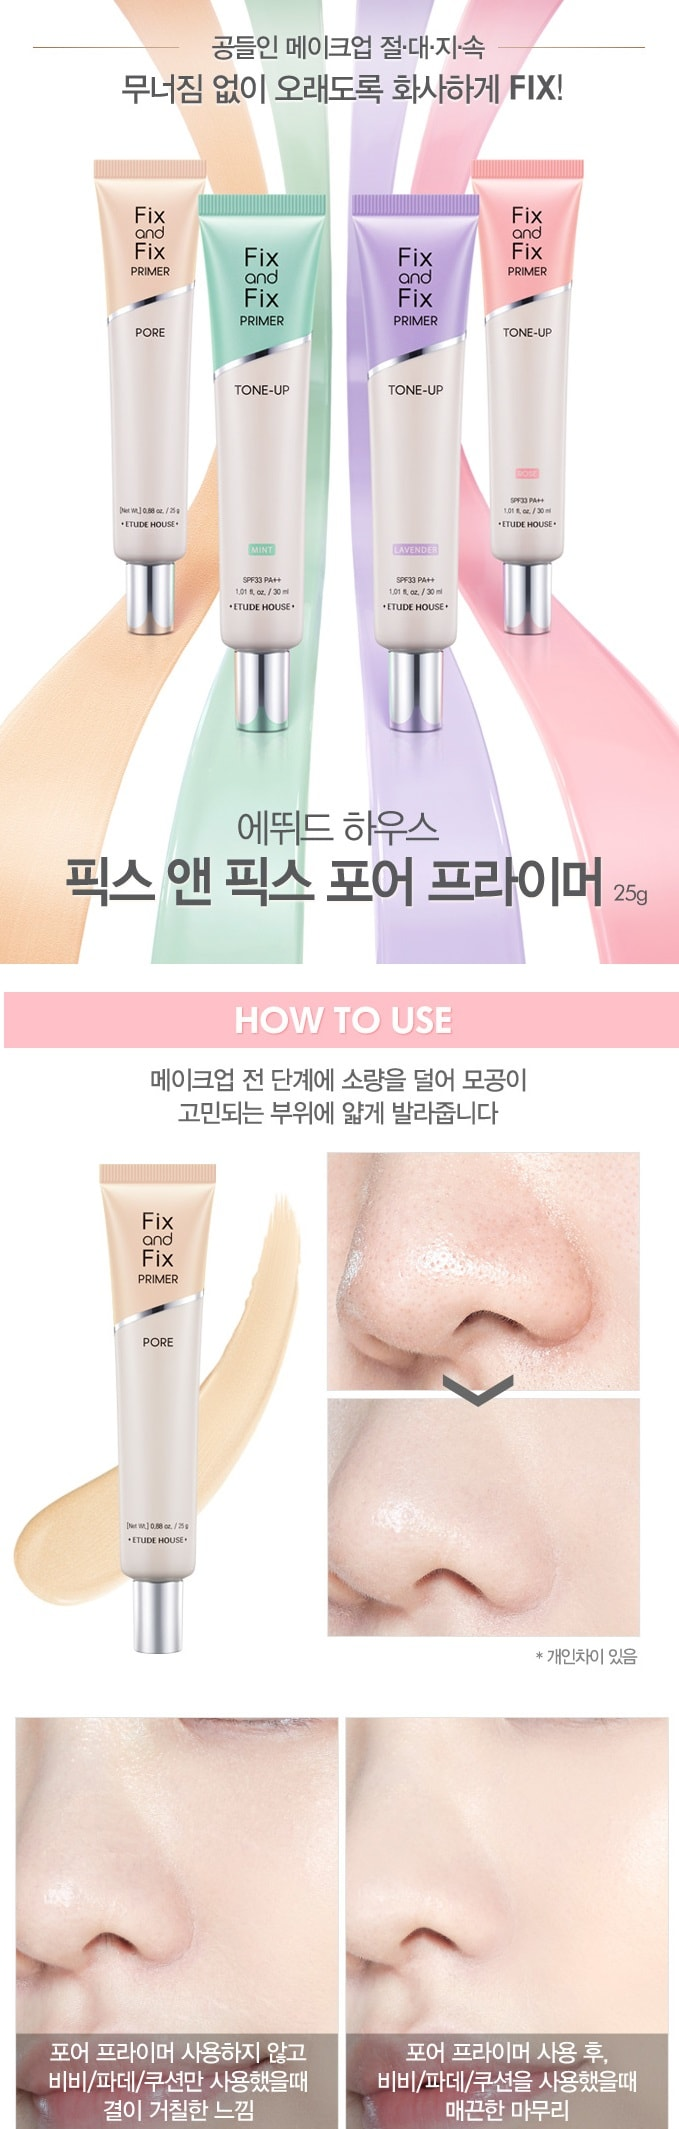 ETUDE HOUSE Fix & Fix Pore Primer 25g